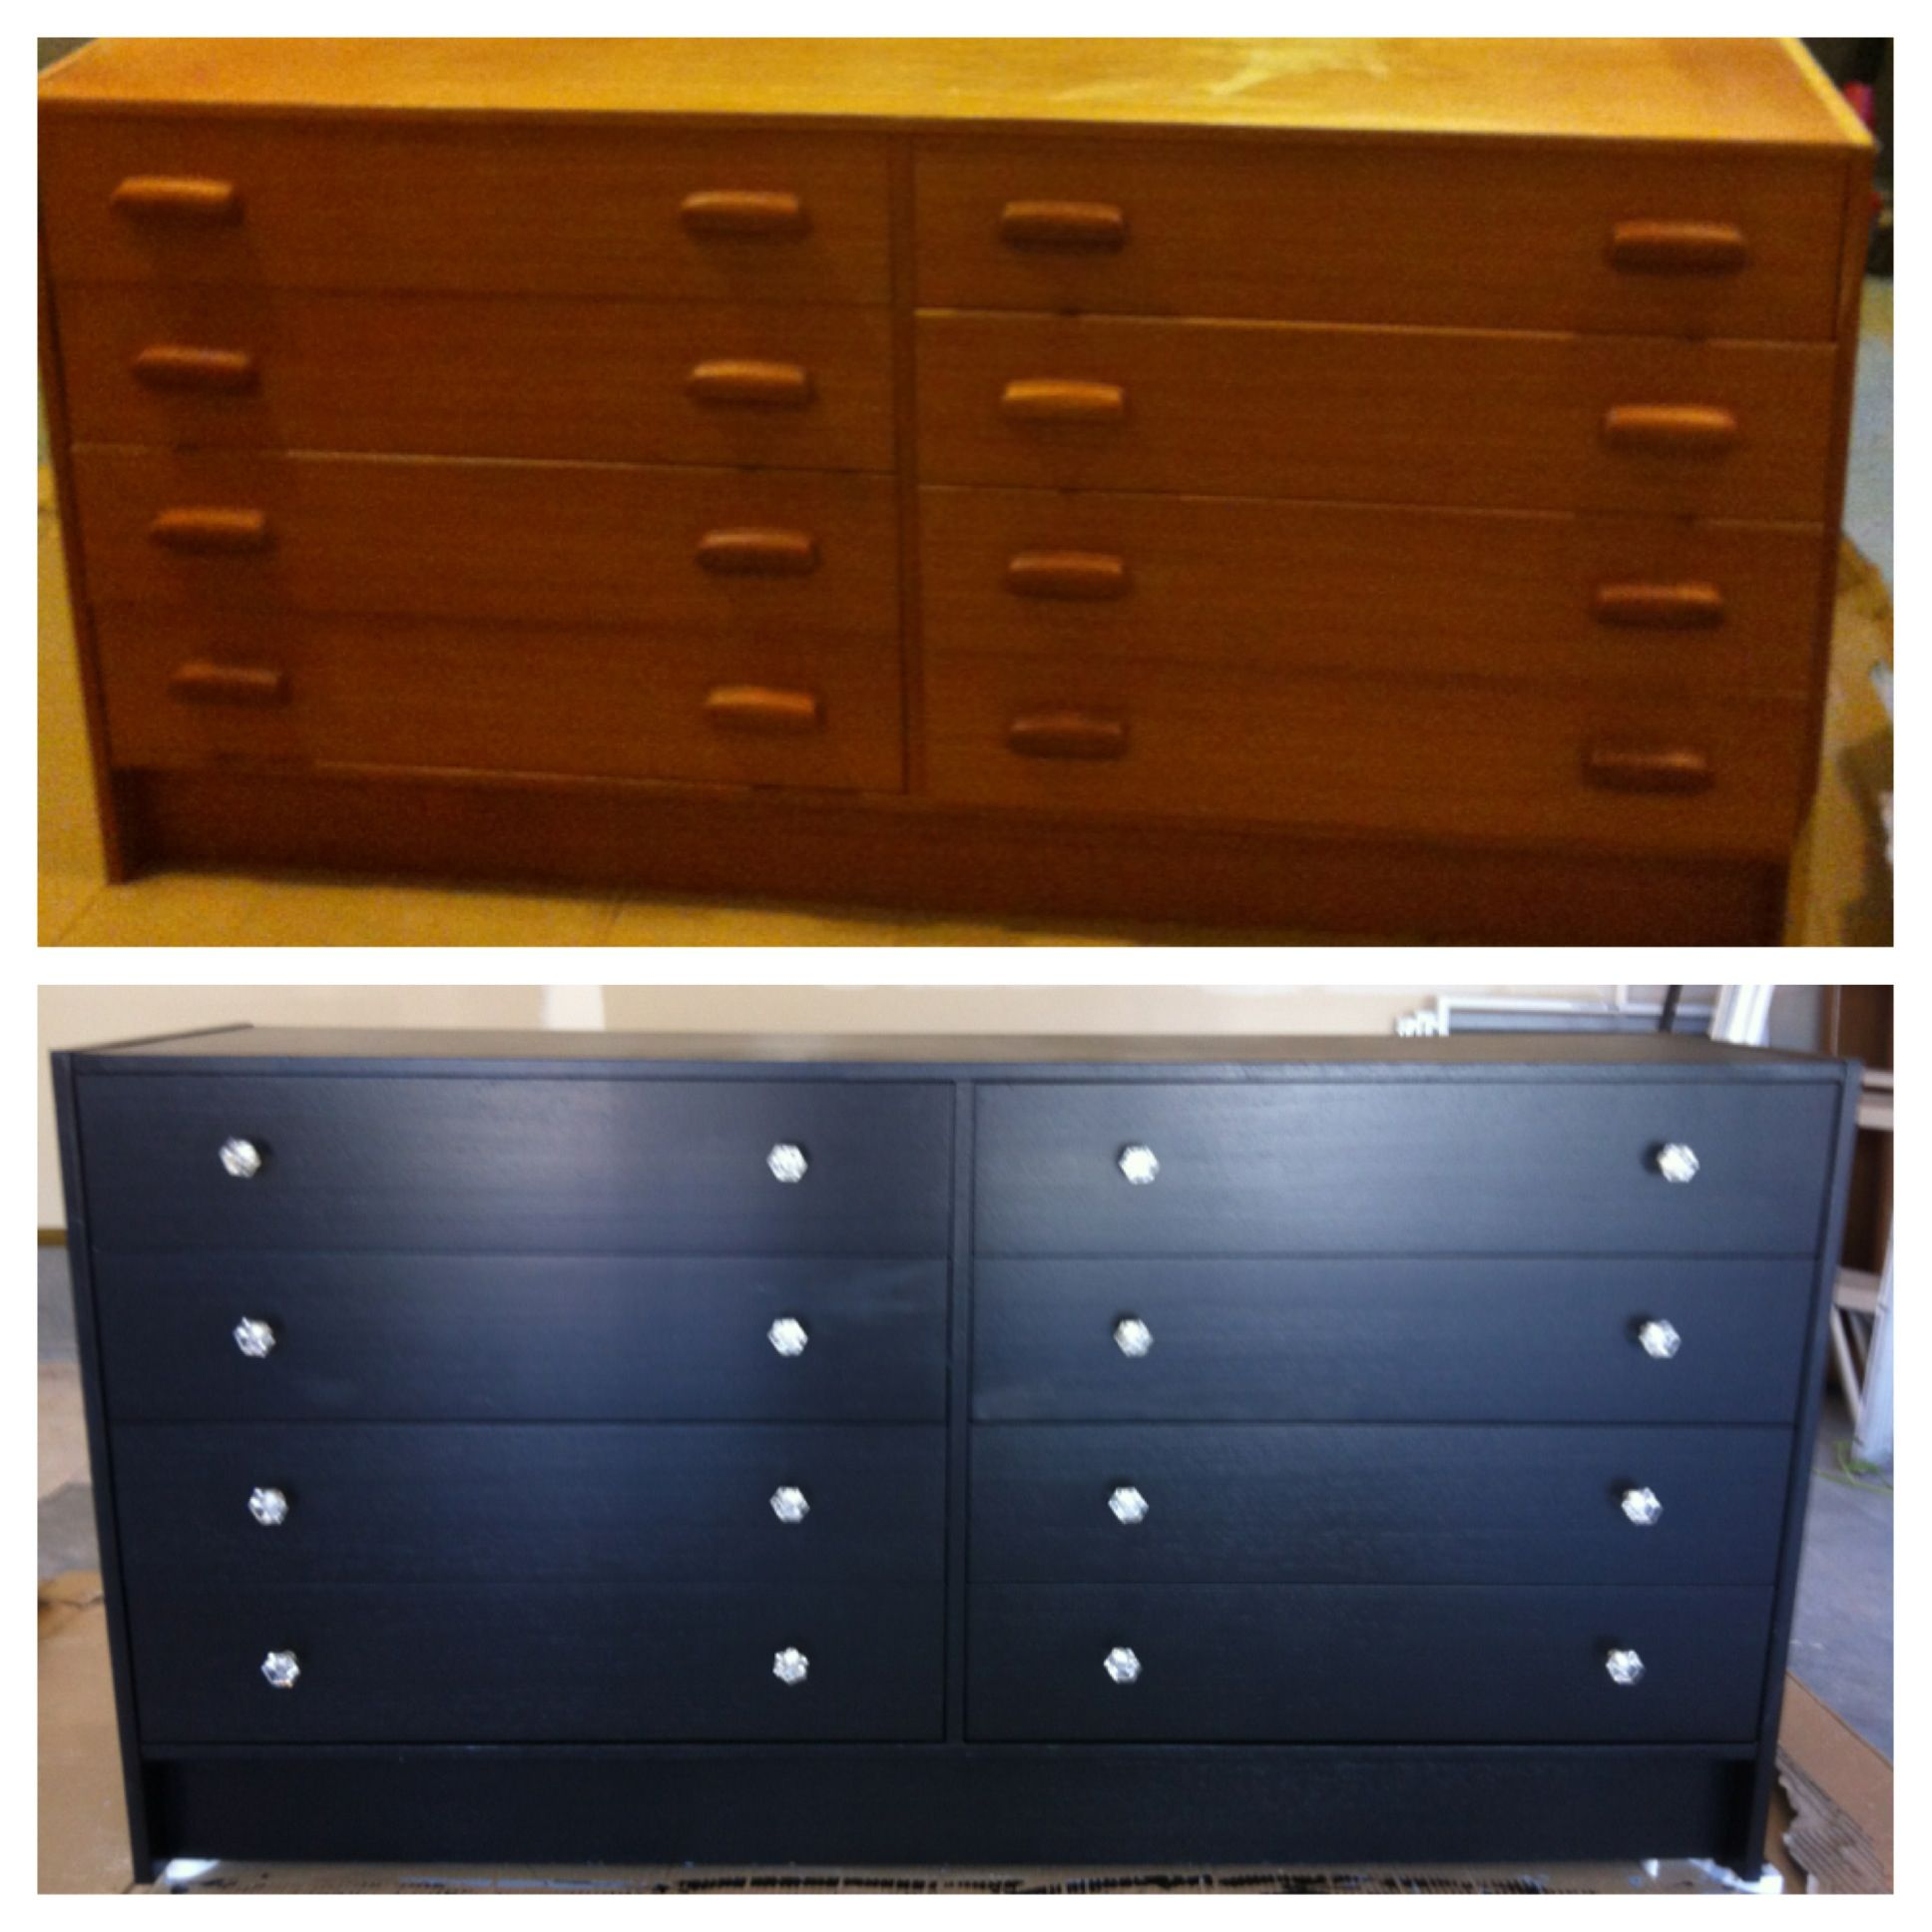 Painted furniture ideas before and after - Before After Salvation Army Find 240 To Buy Dresser Night Stand Paint